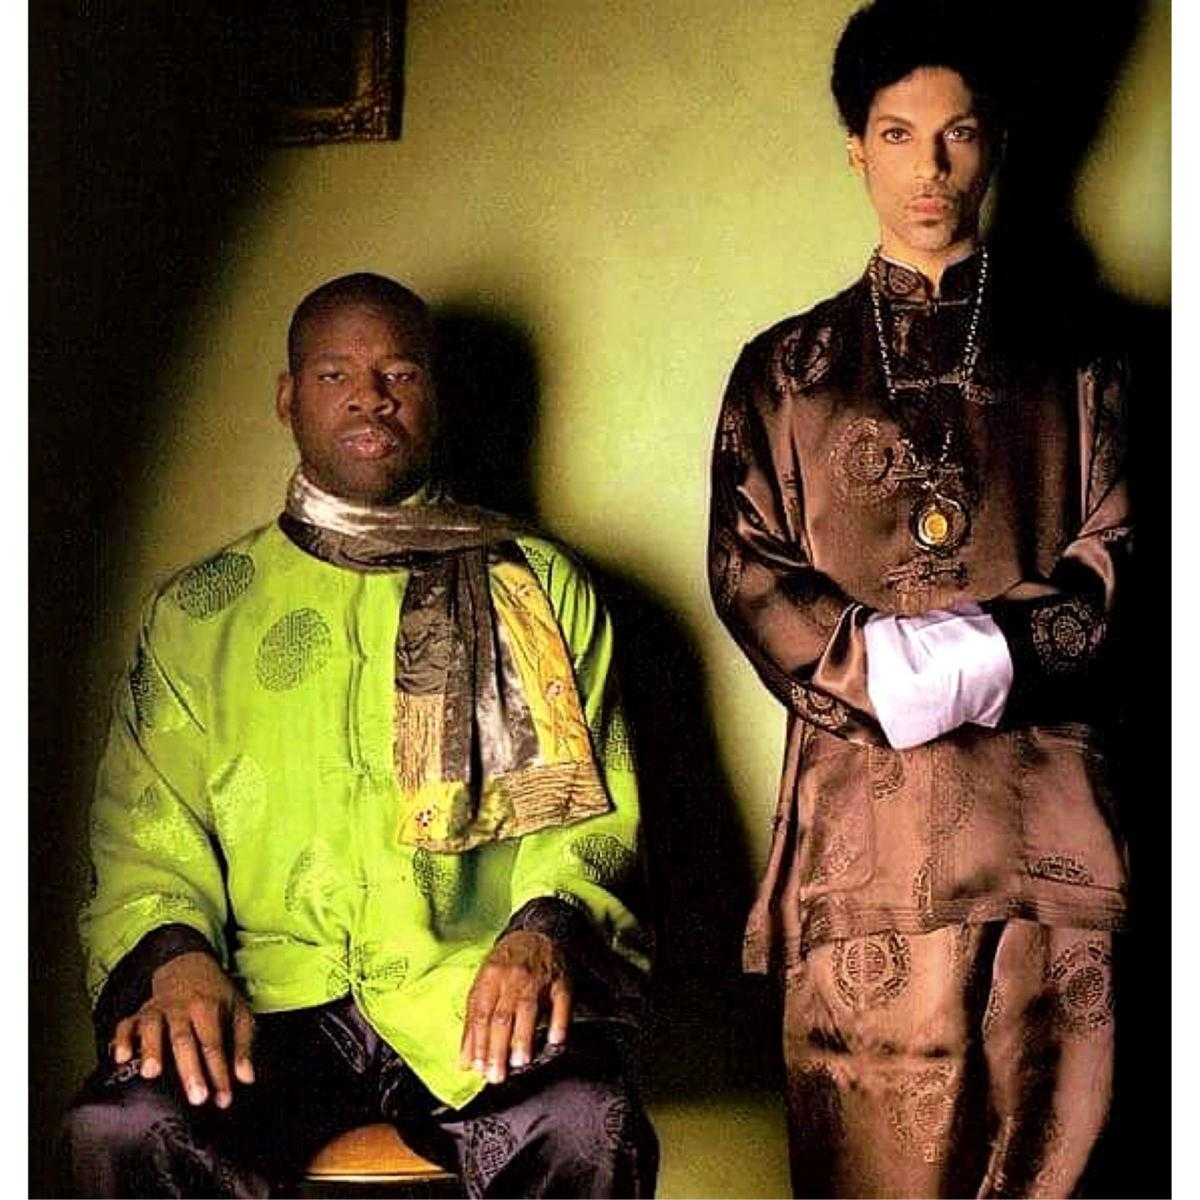 Prince (right) and John Blackwell, Jr. in Japan in 2004. Photo by Afshin Shahidi.jpeg